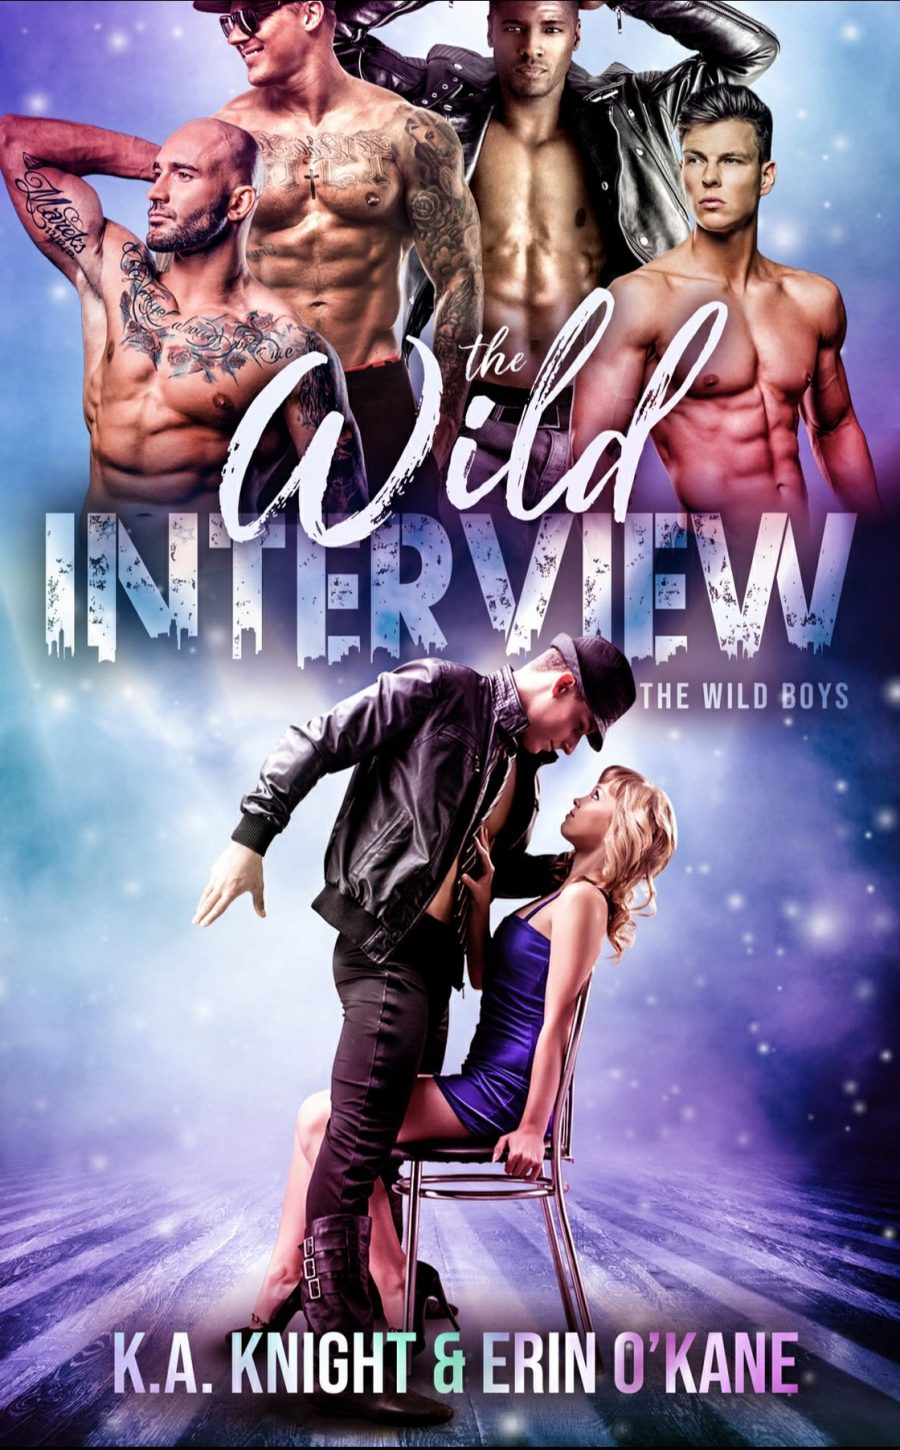 The Wild Interview by K.A. Knight and Erin O Kane - A Book Review #BookReview #Contemporary #RH #WhyChoose #FastBurn #cliffhanger